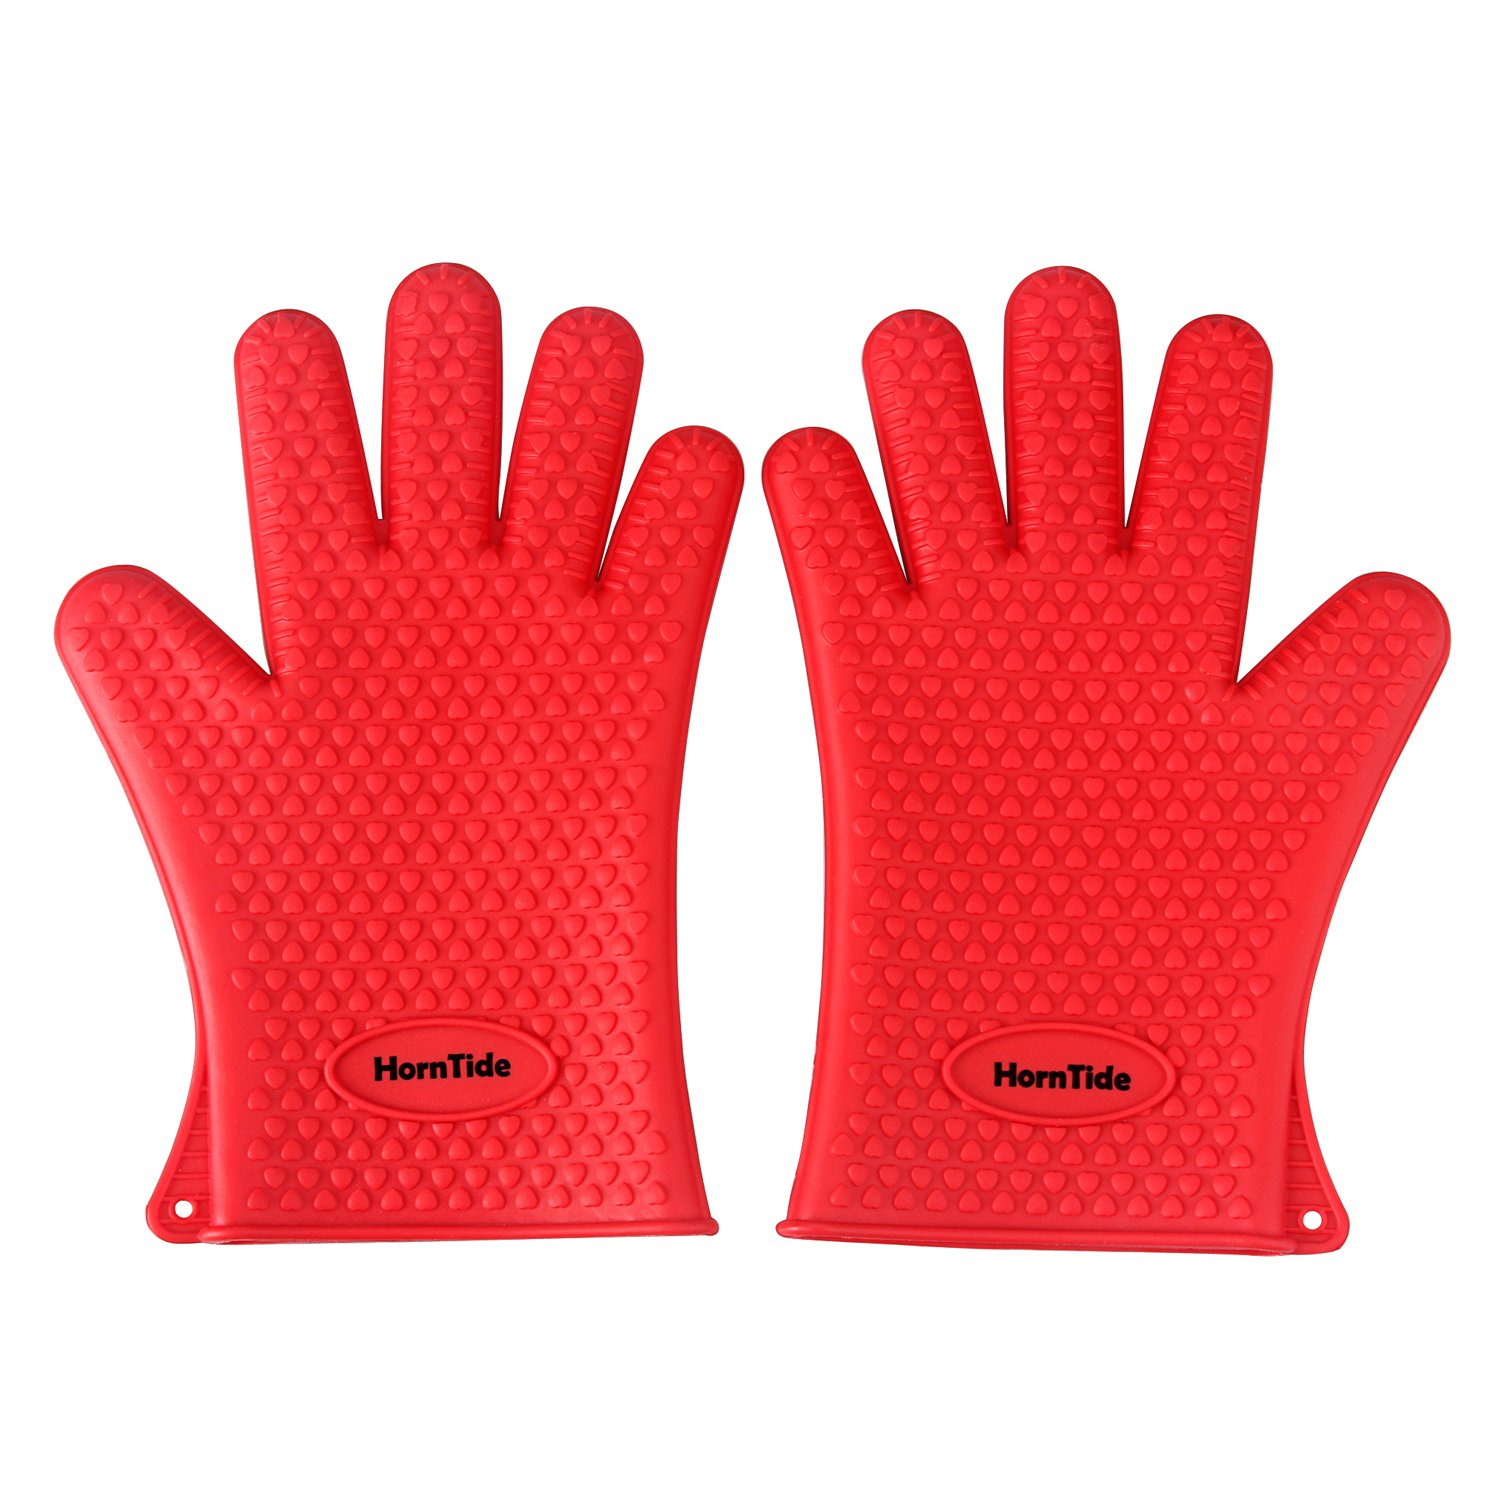 HornTide Heat Resistant Gloves Silicone Oven Mitts Withstand 230°C 446°F Five-Fingered Grip for Baking Cooking Grilling One Size Fits Most (Red)